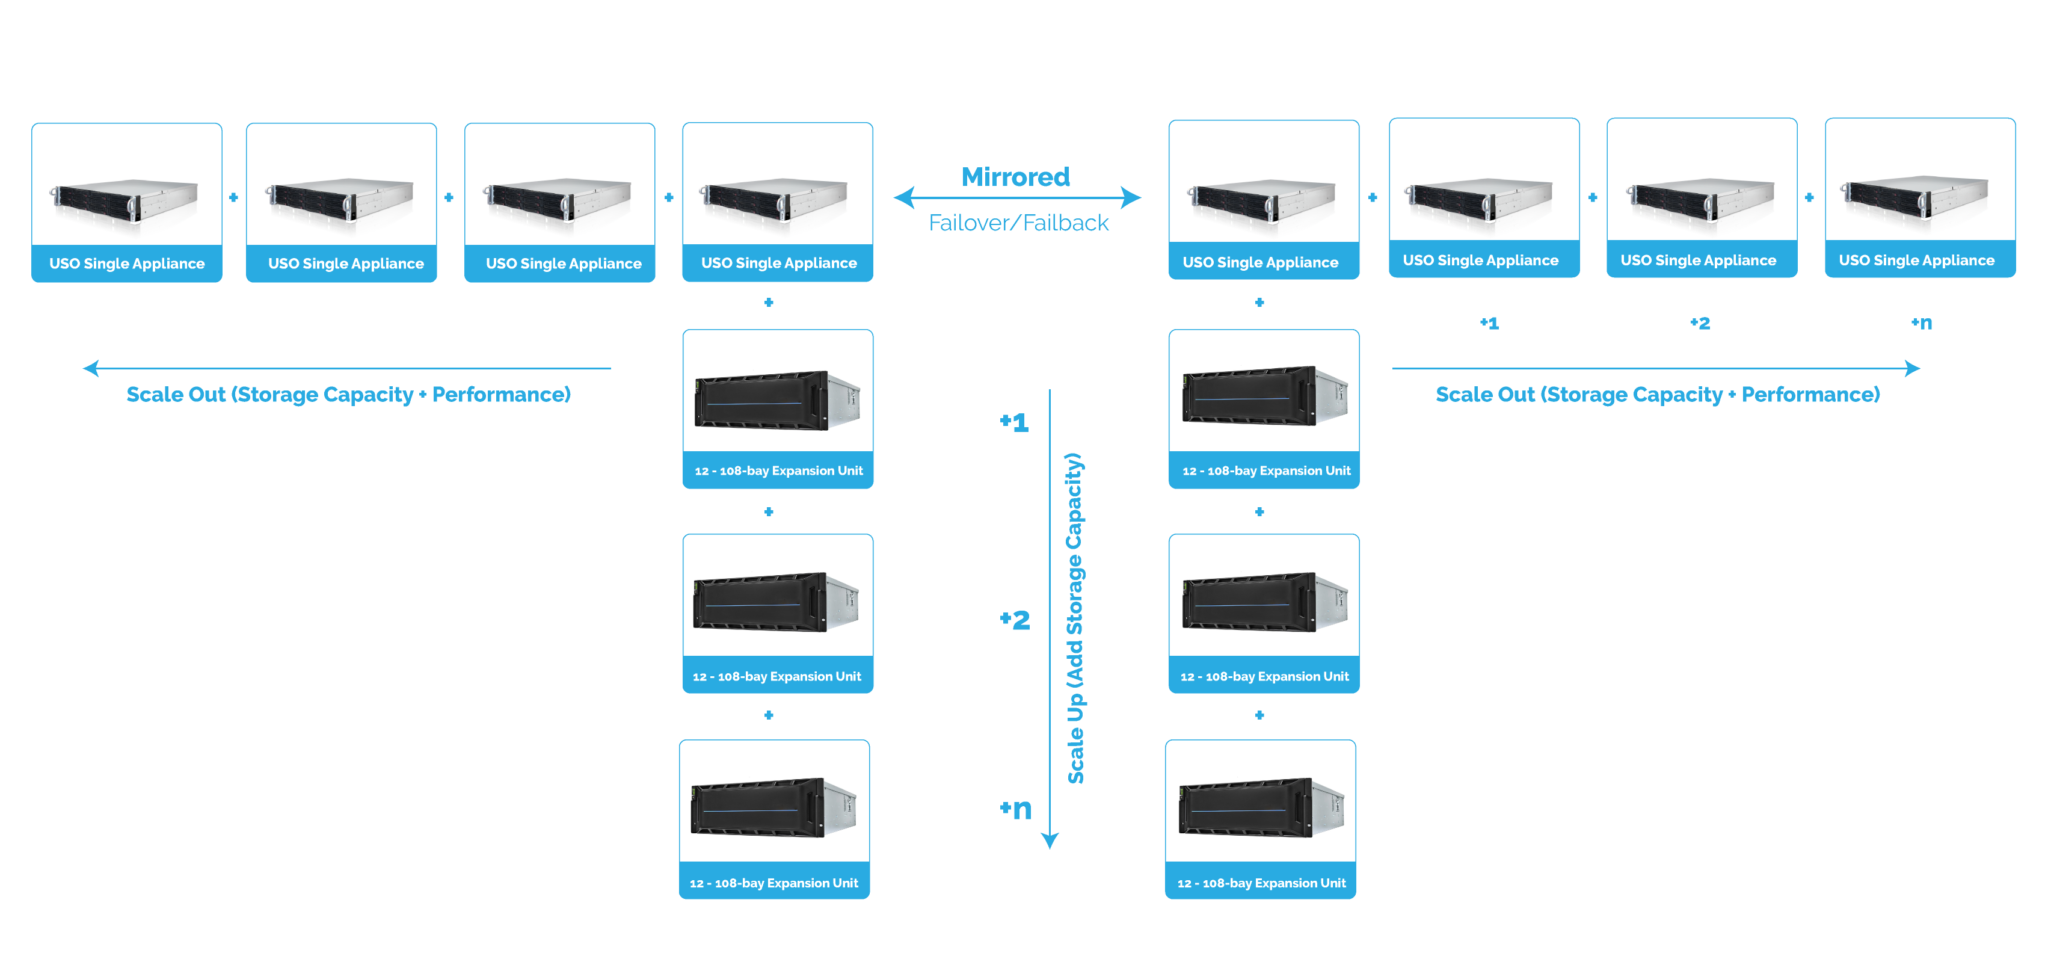 Data Center Hardware Overview: Dual Node Shared Nothing 5